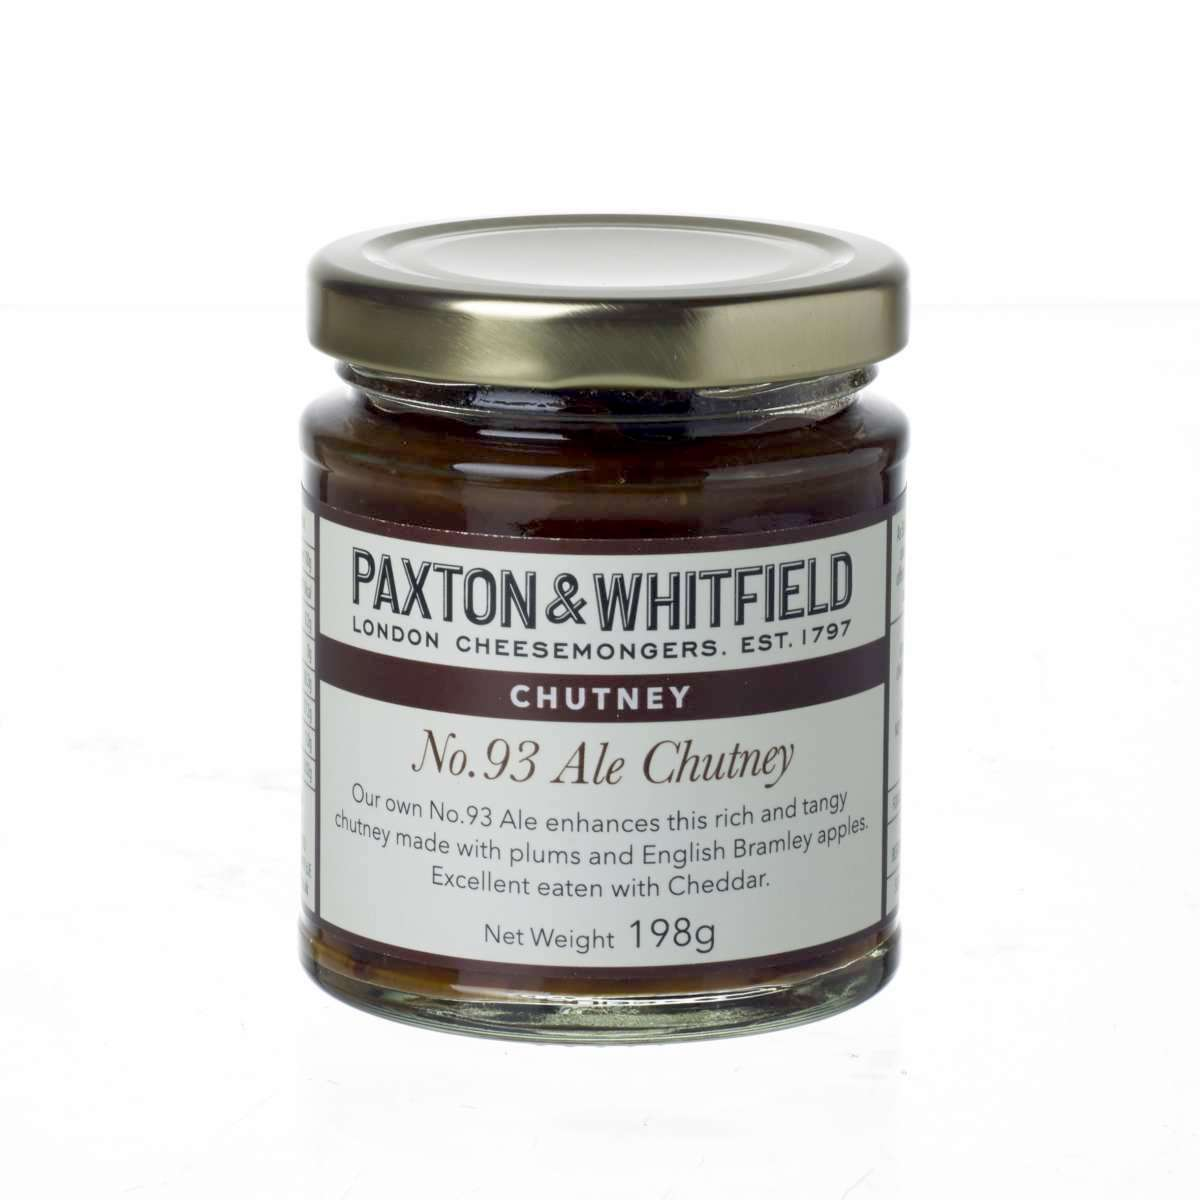 Paxton & Whitfield No. 93 Ale Chutney 198g